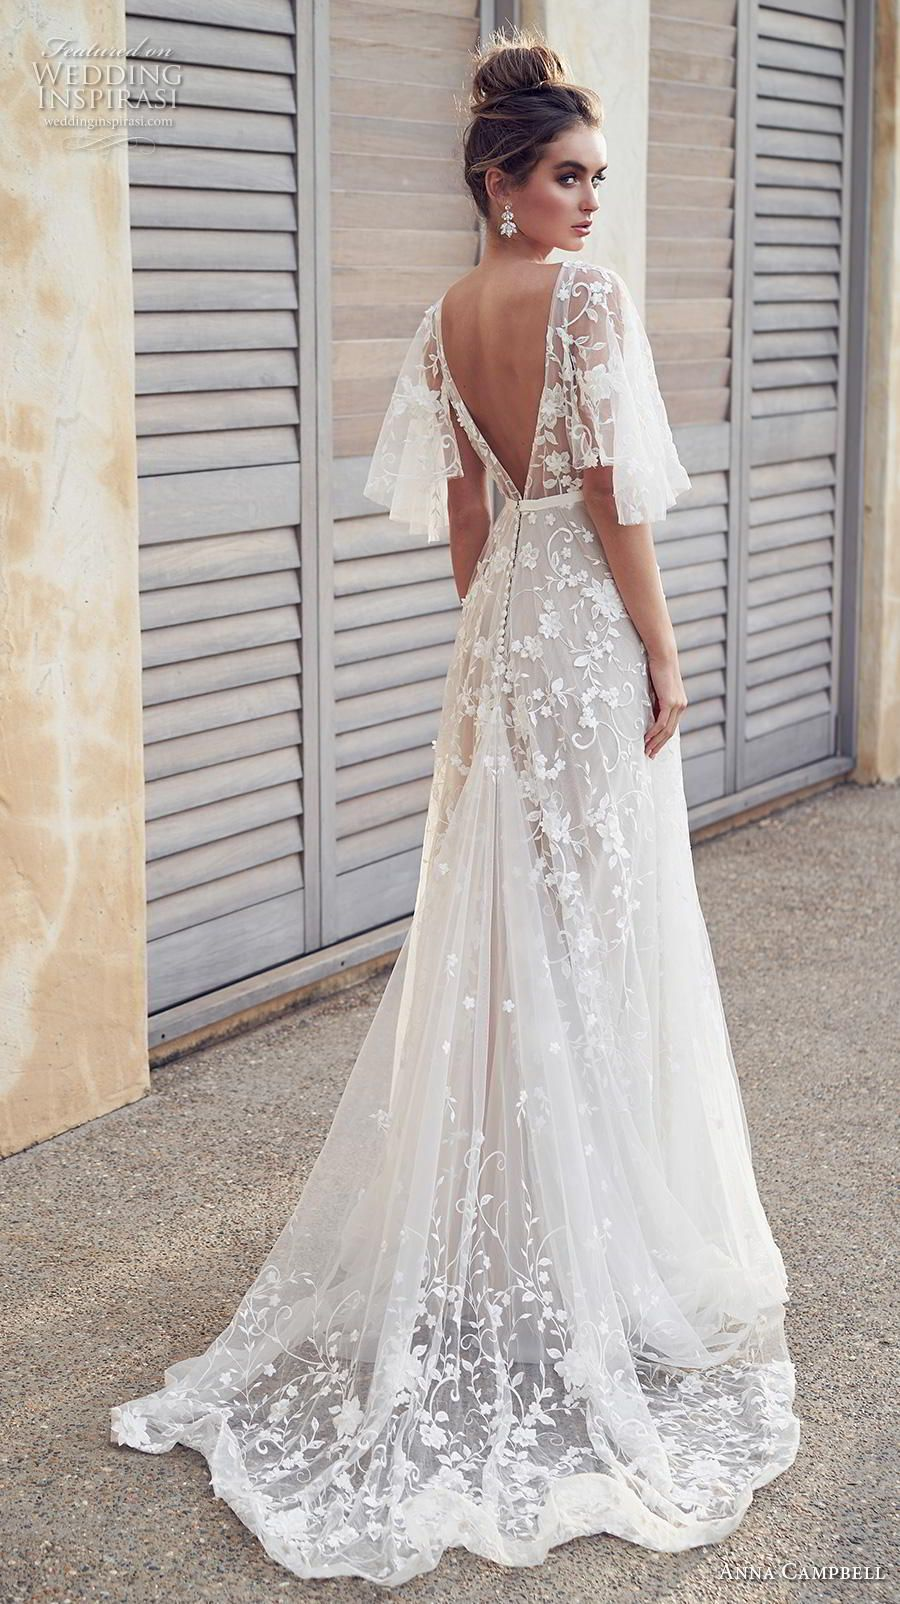 anna campbell 2019 bridal half handkerchief sleeves v neck full  embellishment romantic pretty soft a line wedding dress blackess open back  sweep train (1) ... b152339b5bc7